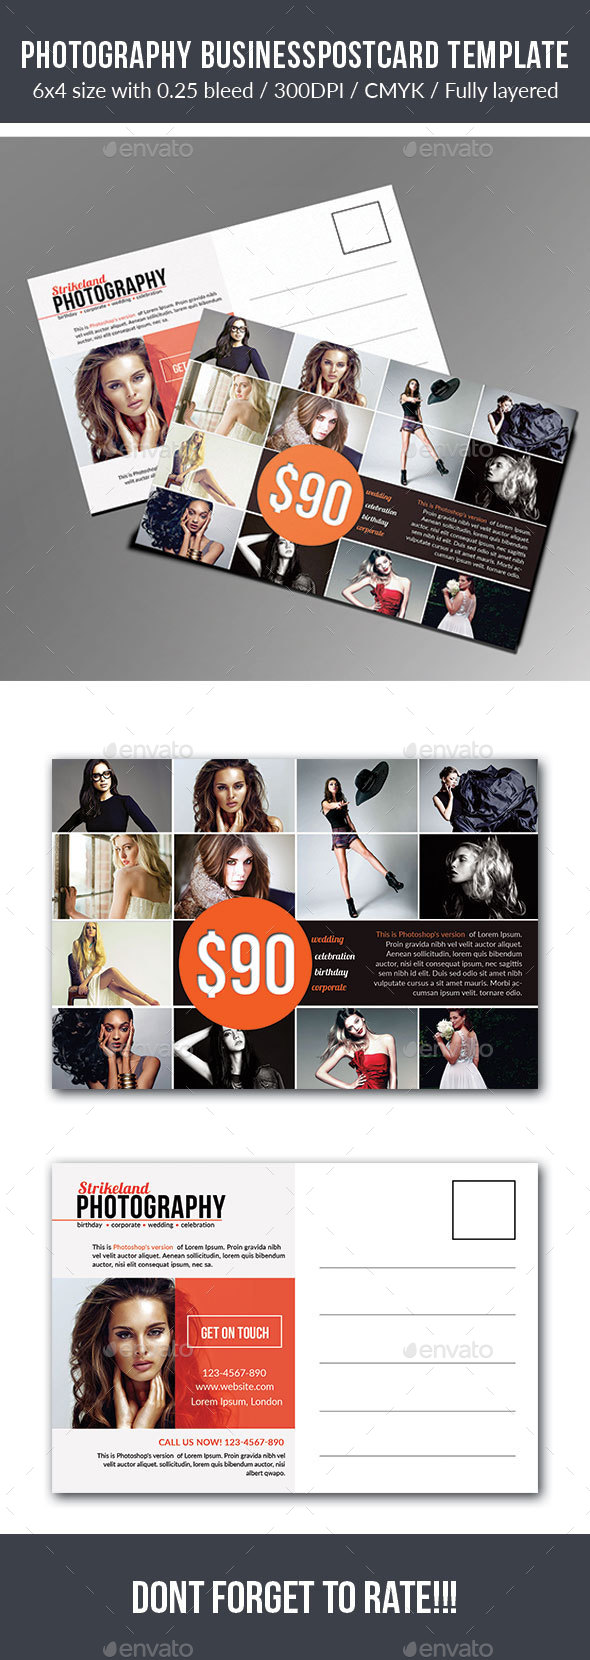 Photography Postcard Template - Cards & Invites Print Templates